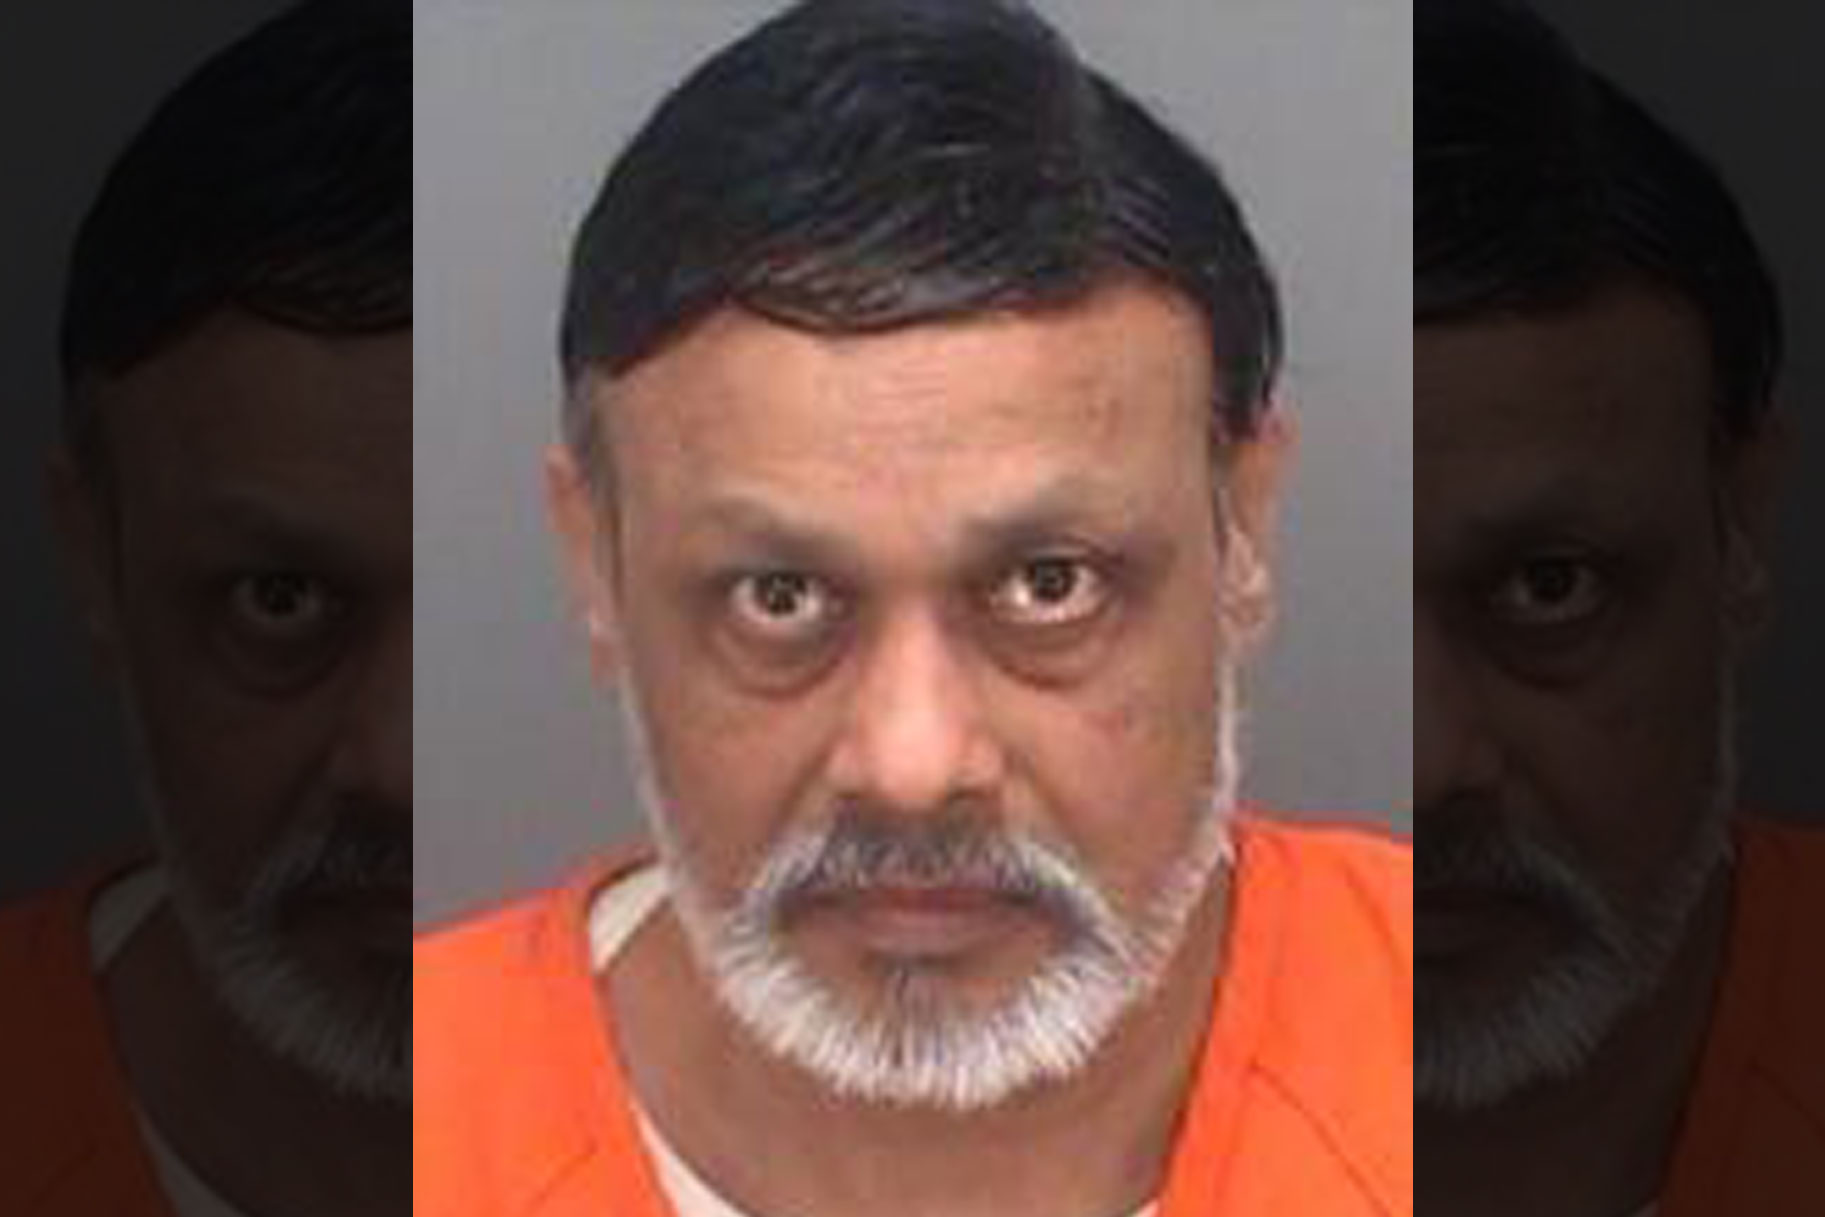 Restaurant Worker Followed 12-Year-Old Girl Into Bathroom To Get Her Number, Then Raped Her Hours Later